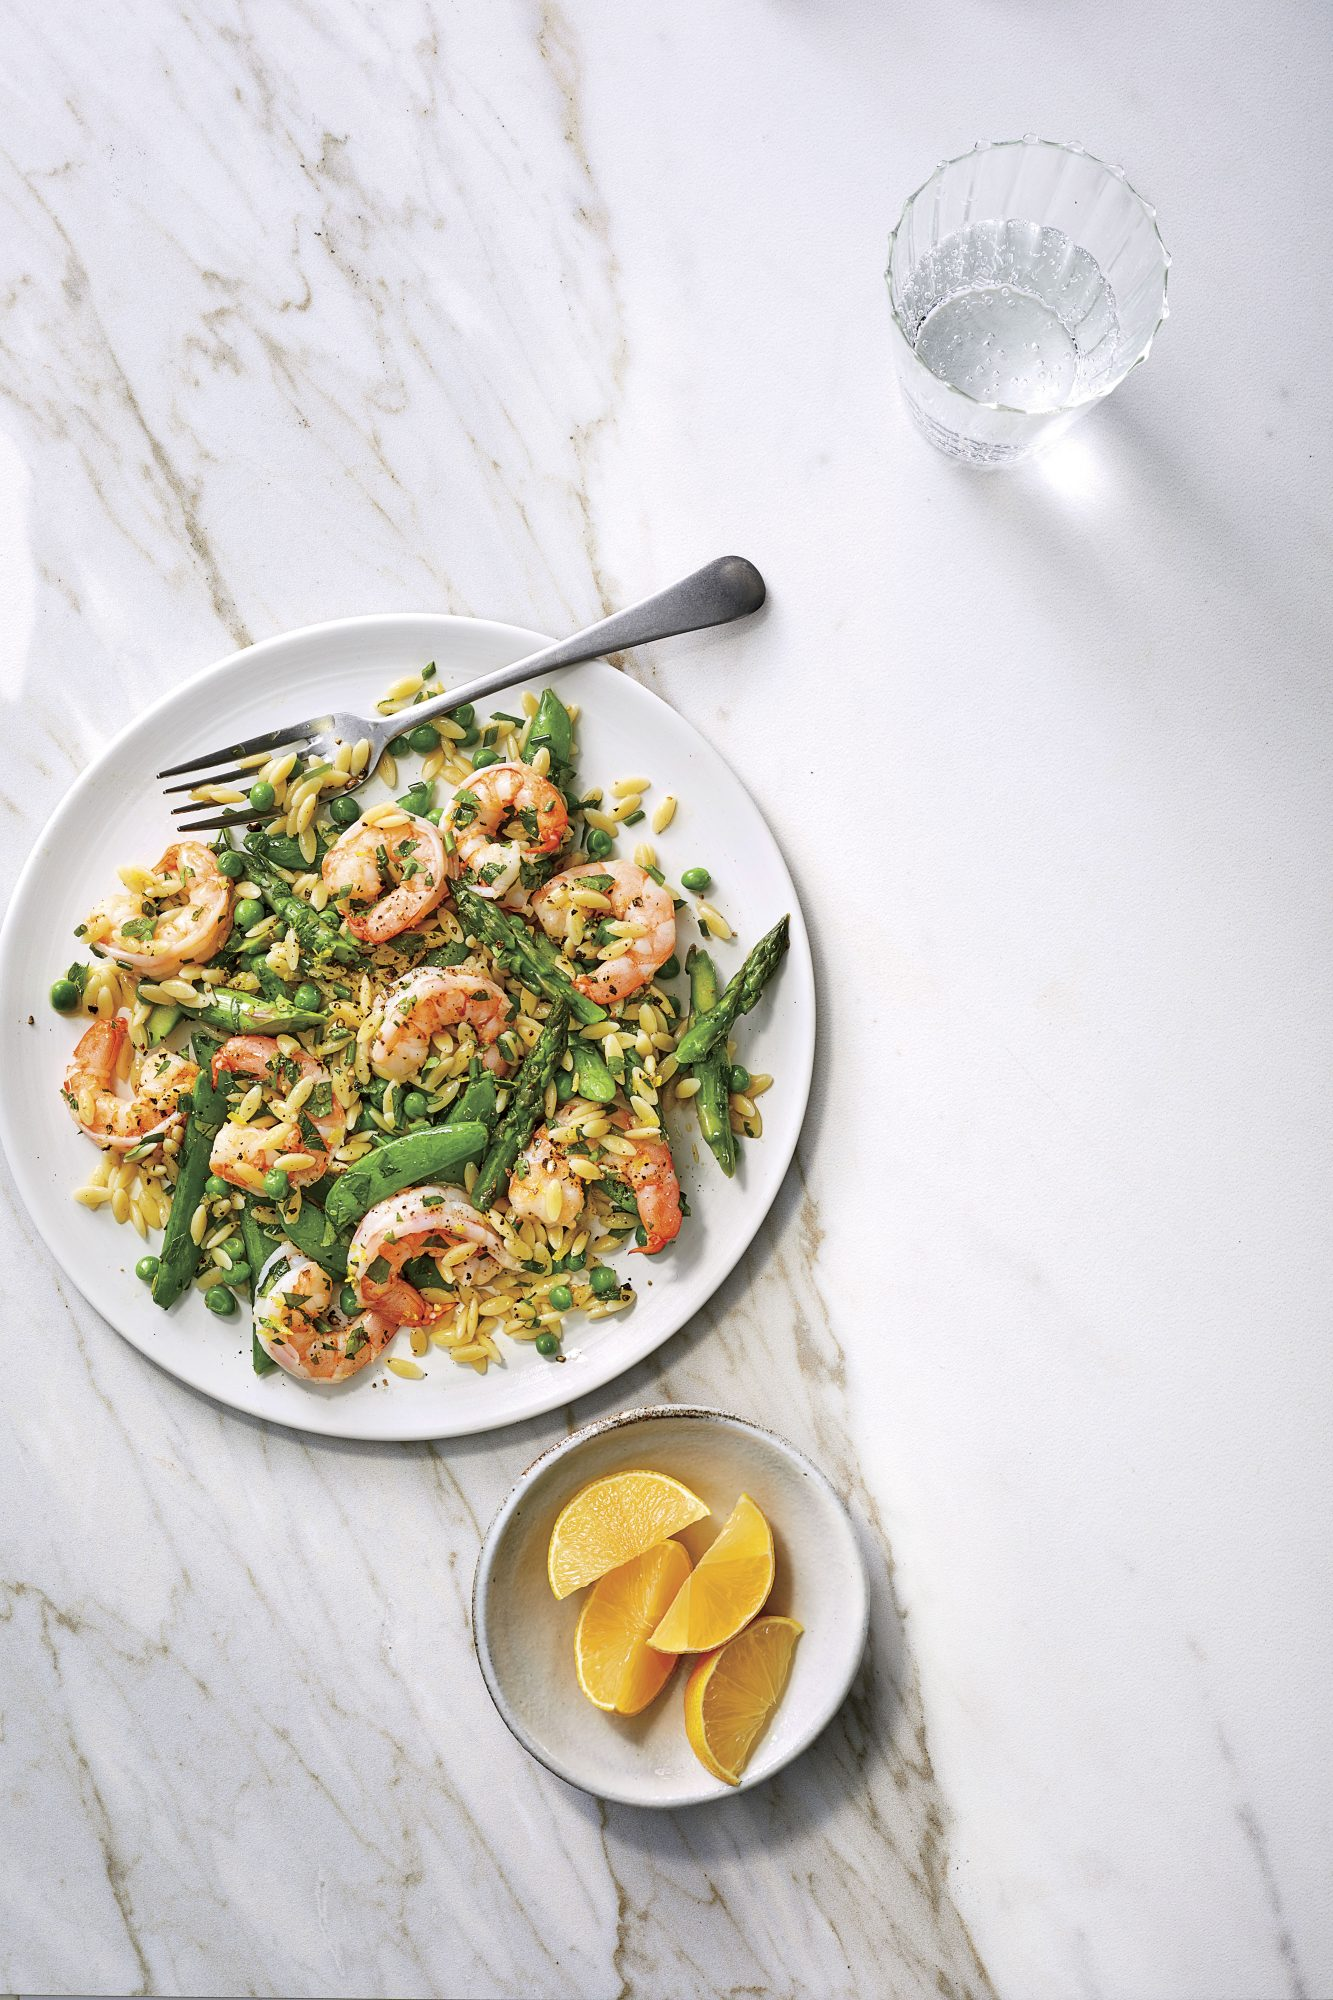 Orzo Salad with Shrimp and Lemon Dressing